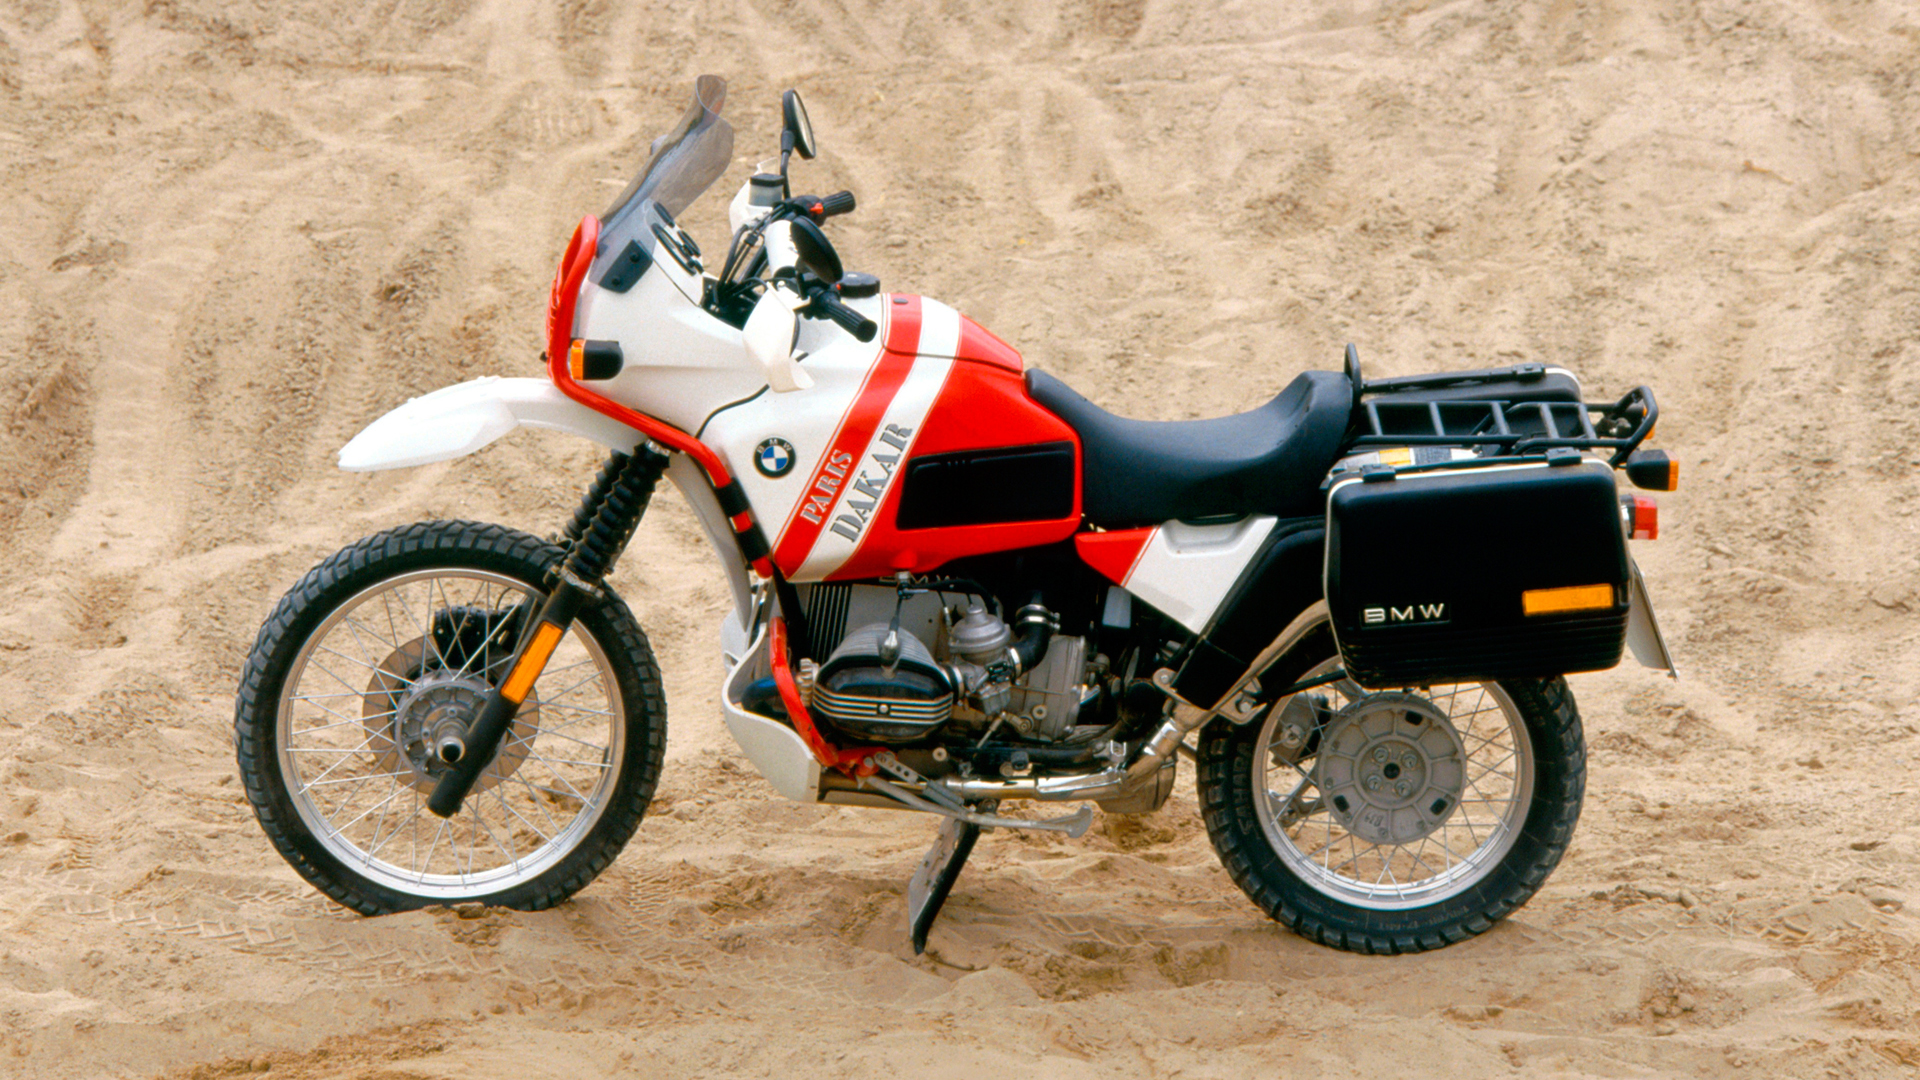 bmw r 100 gs paris dakar baujahr 1993 datenblatt technische details. Black Bedroom Furniture Sets. Home Design Ideas